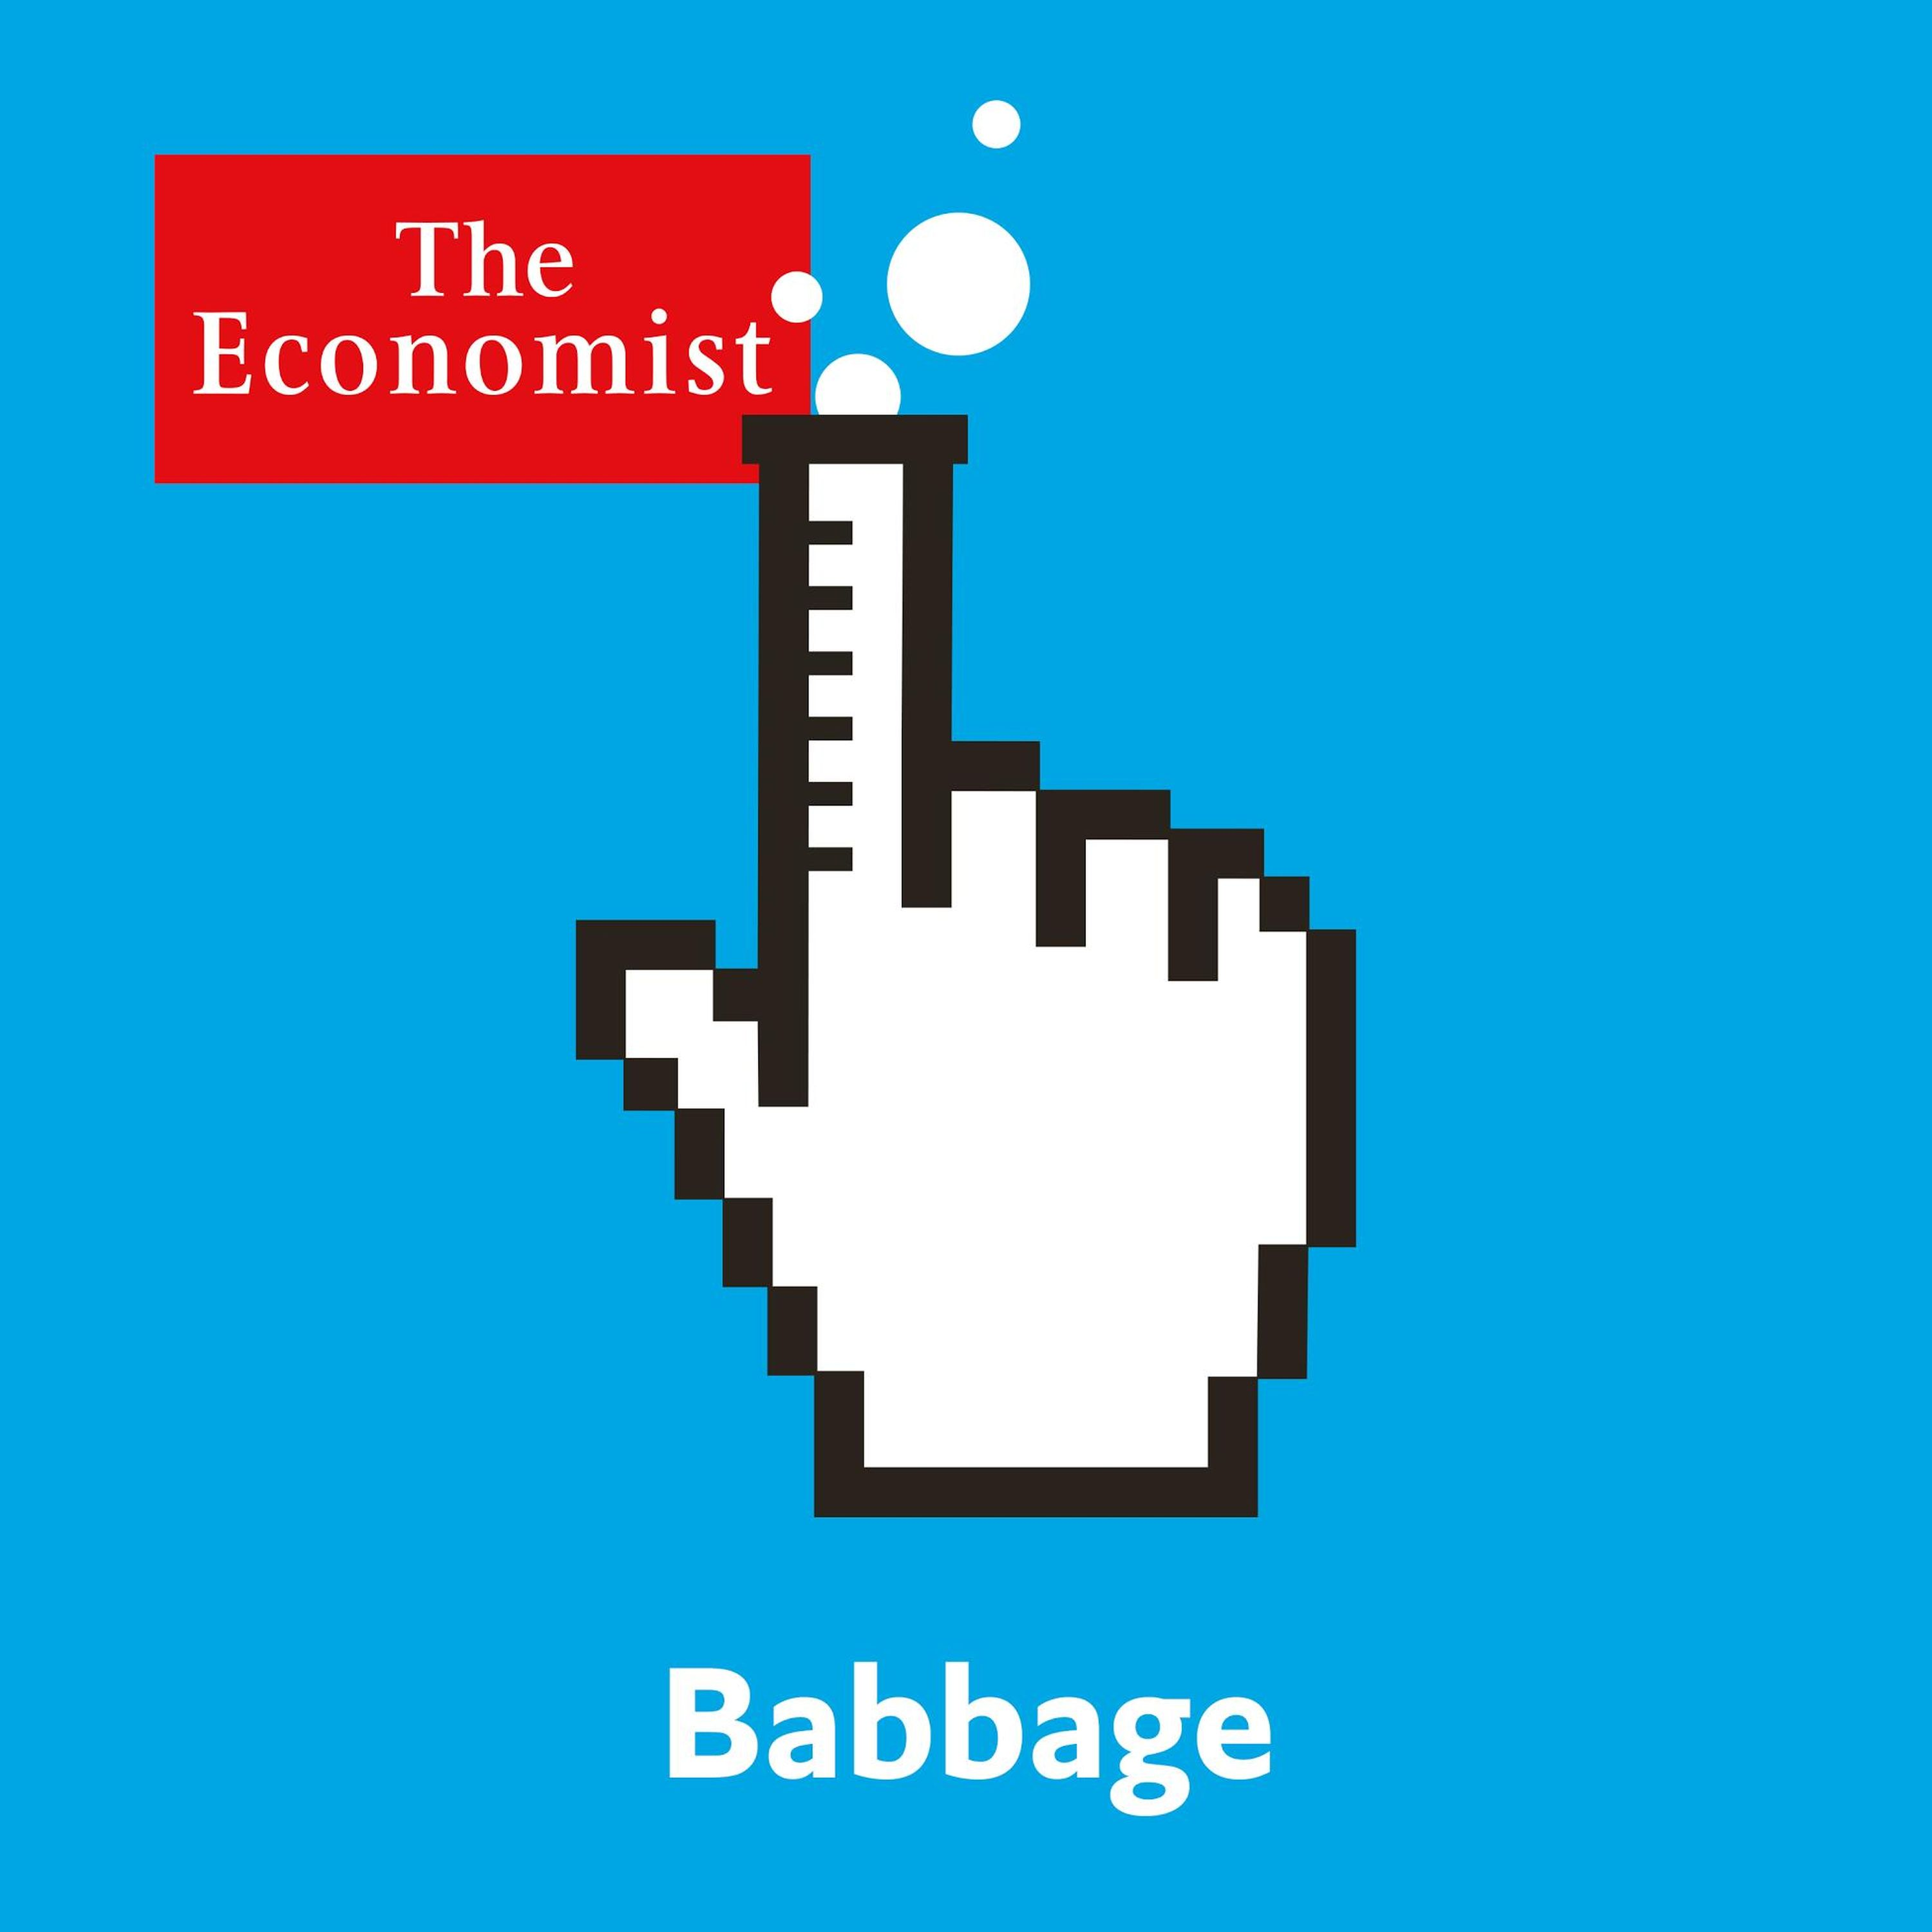 Babbage: Taxis for take-off